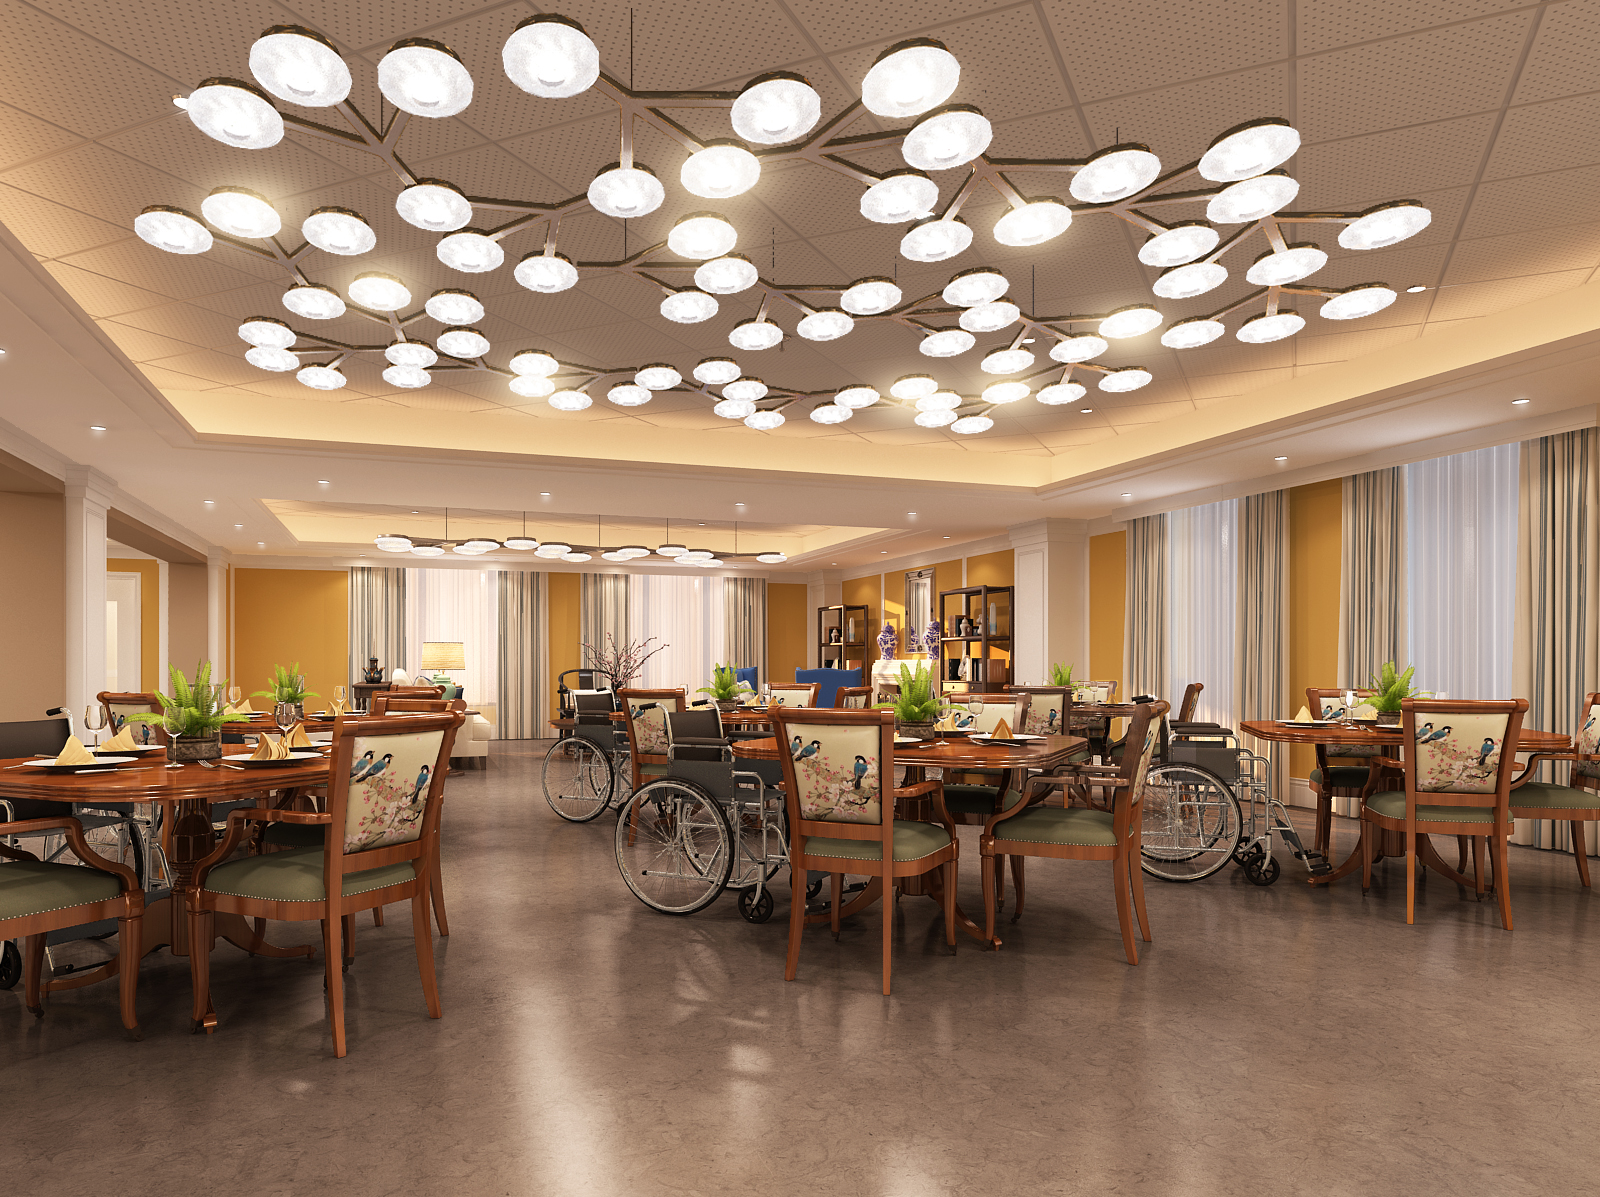 Ávila Torio Promotes U201ctunableu201d LED Lighting, Which Was Used In The  Sacramento Study, And Notes That Facilities With Memory Care Residents  Should Employ ...